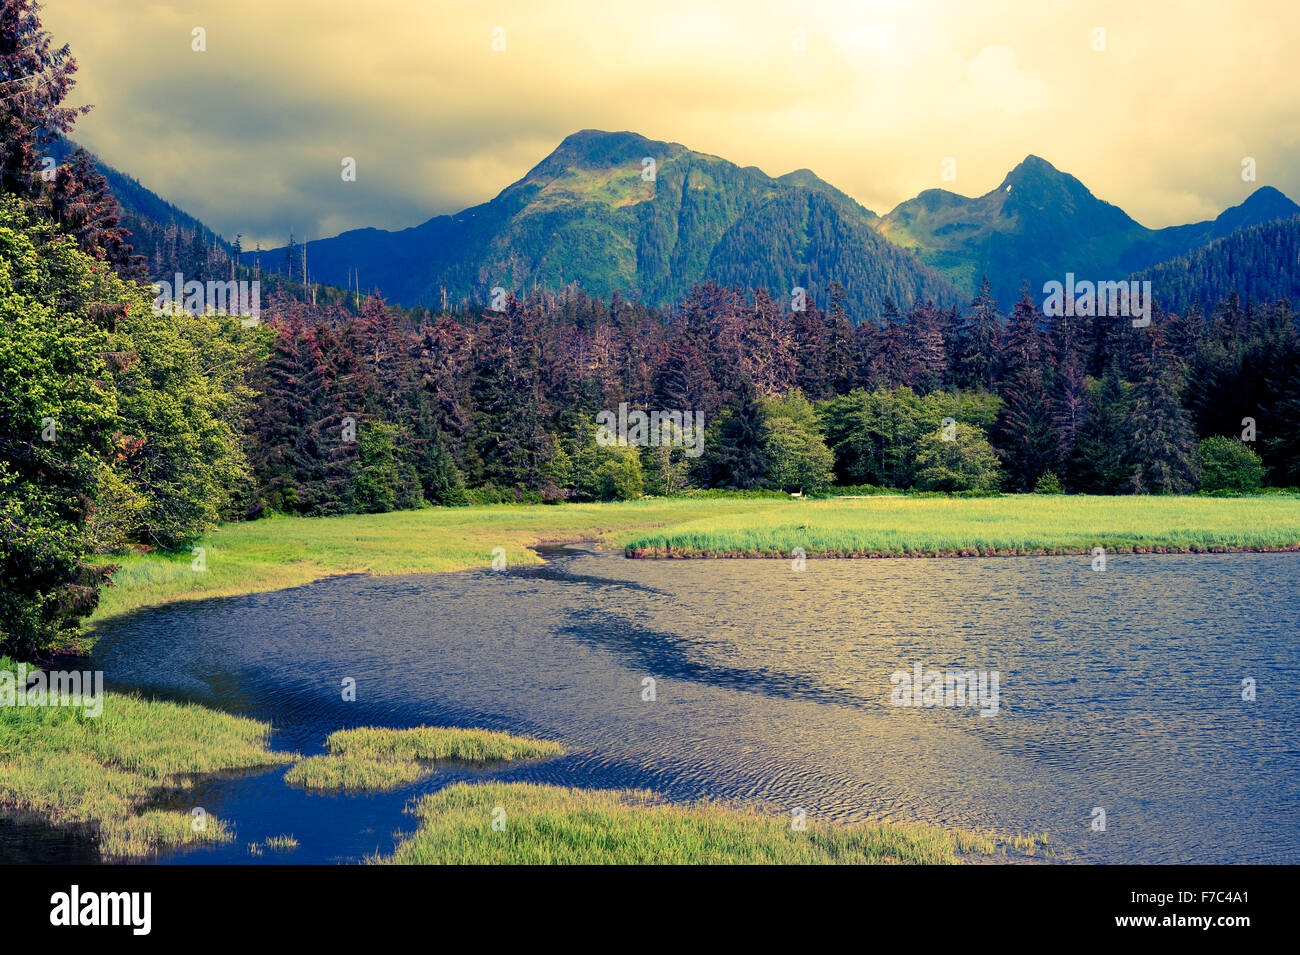 Scenic view of estuary and mountains near the Starrigavan River's mouth, Tongass National Forest,  Sitka, Alaska, - Stock Image